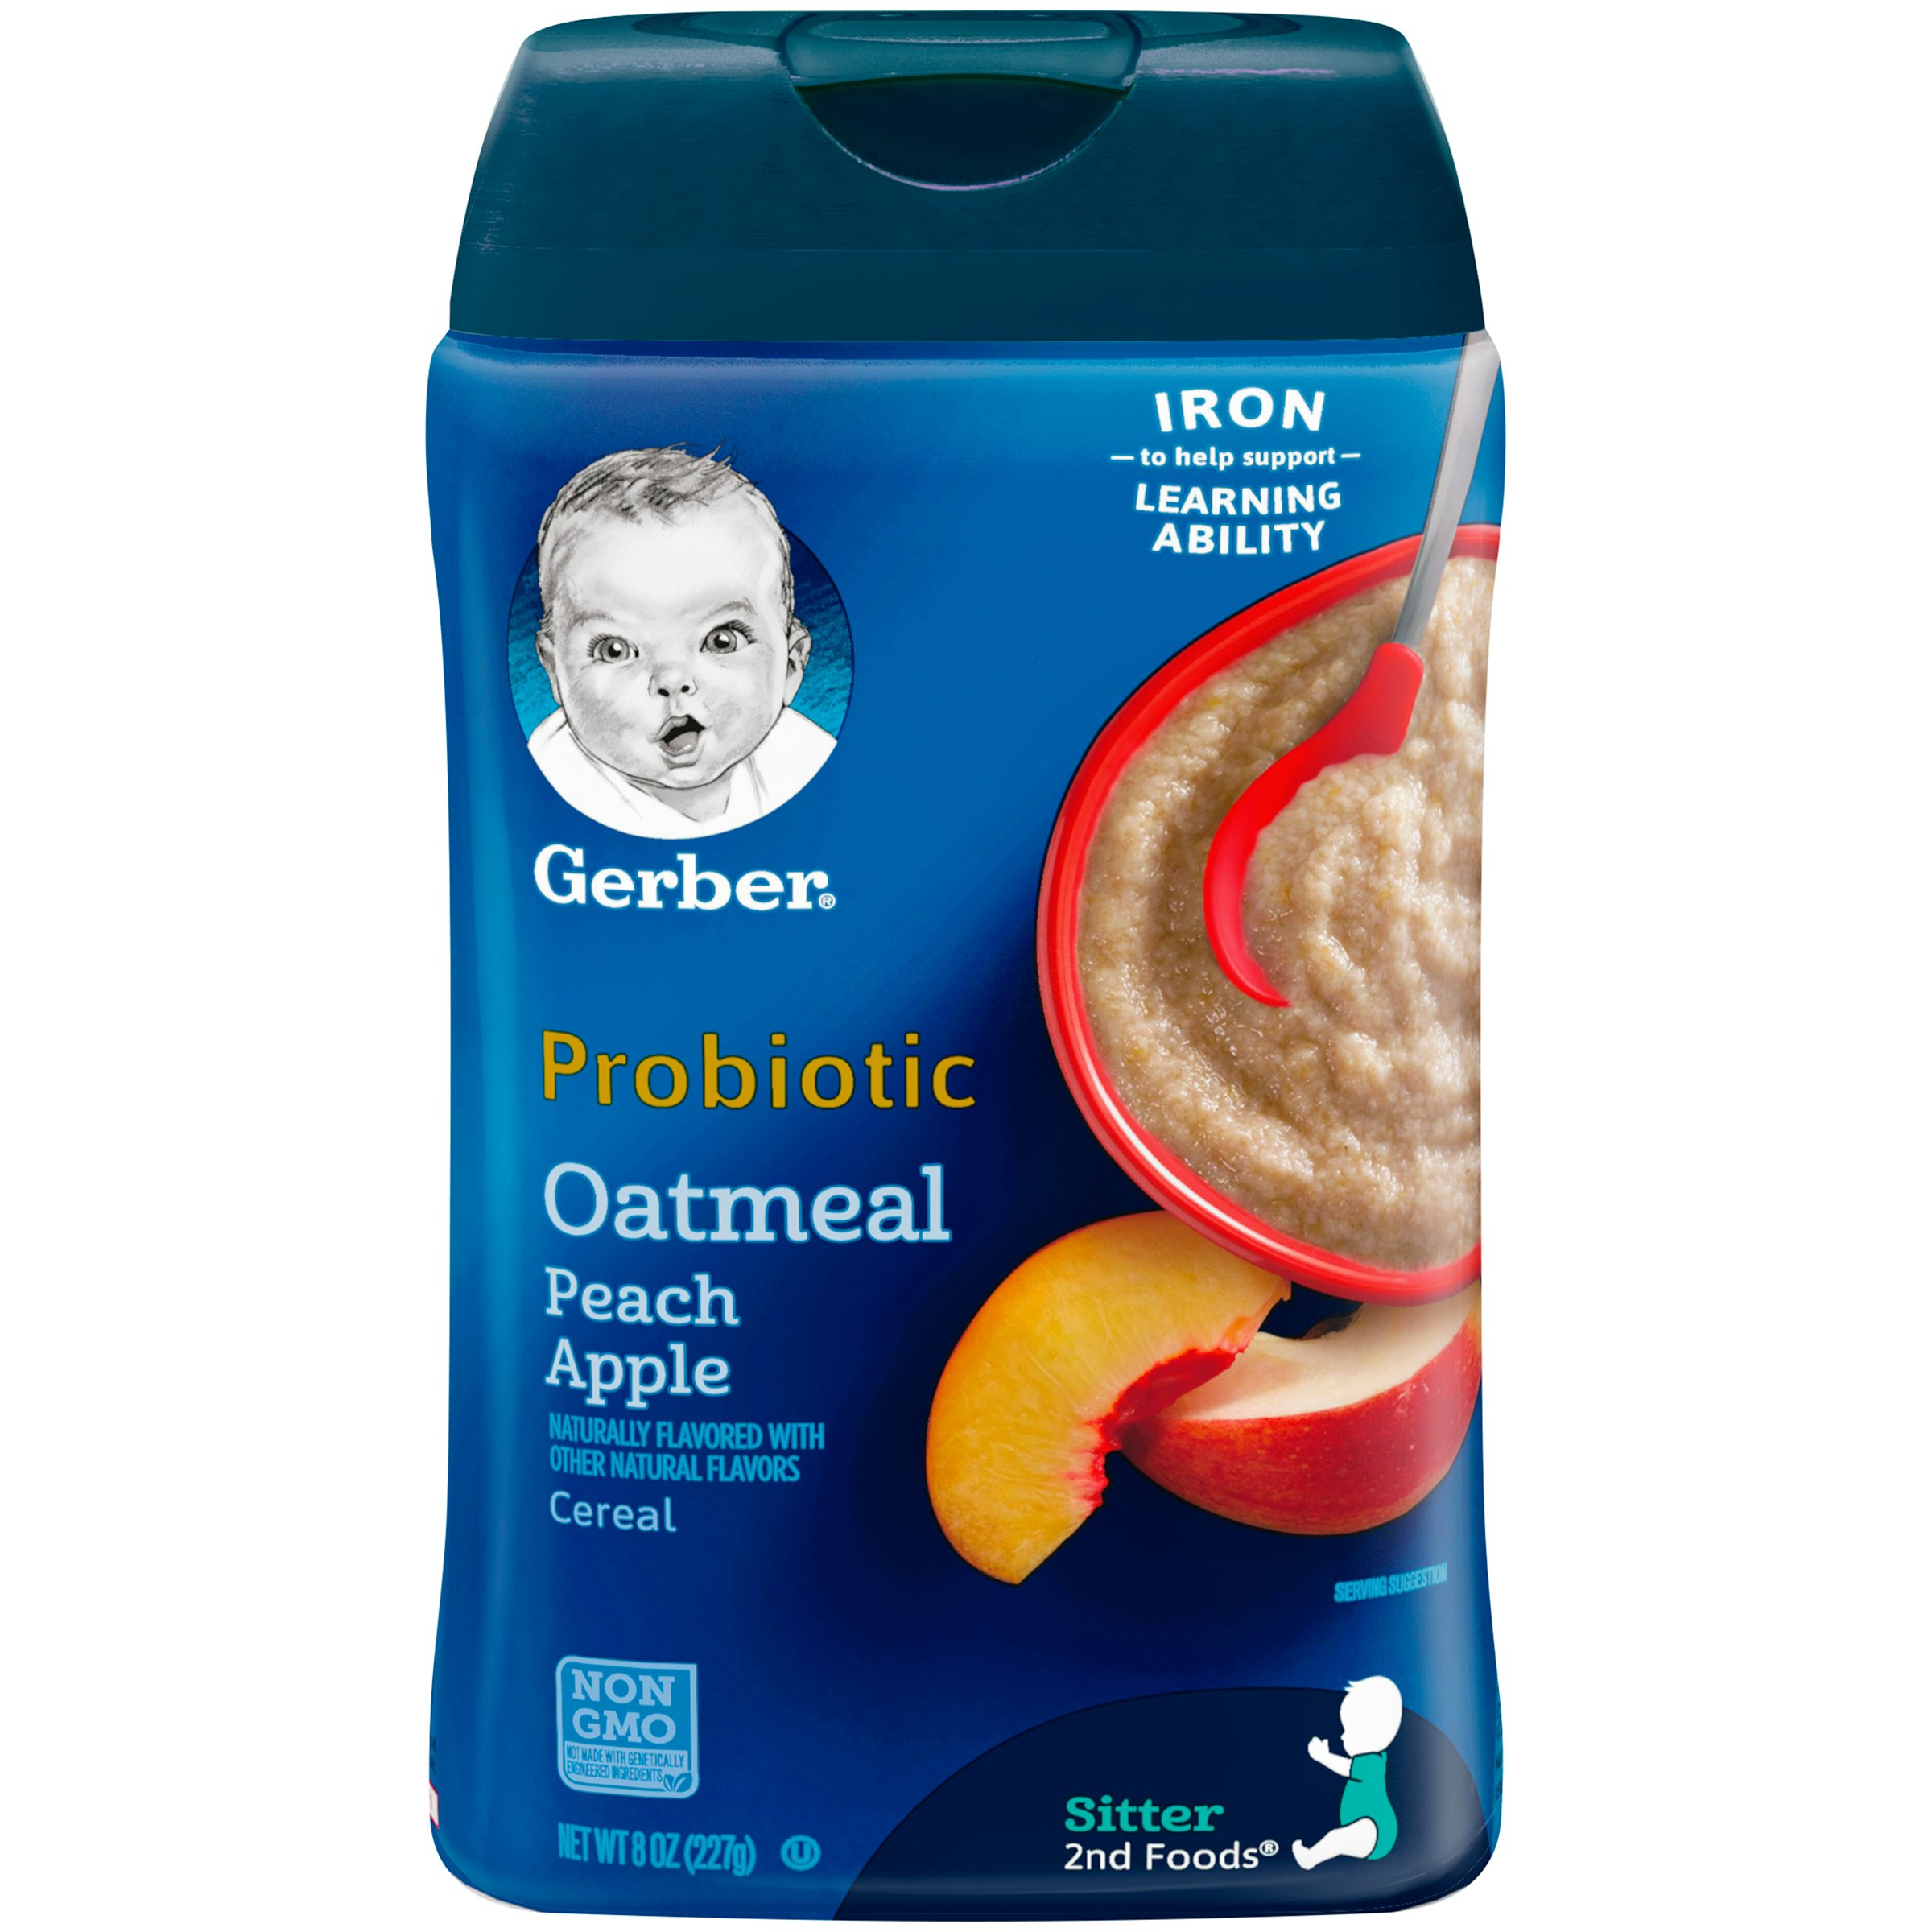 Gerber Baby Cereal Probiotic Oatmeal & Peach Apple Baby Cereal Canister, 8 oz by Gerber Baby Cereal